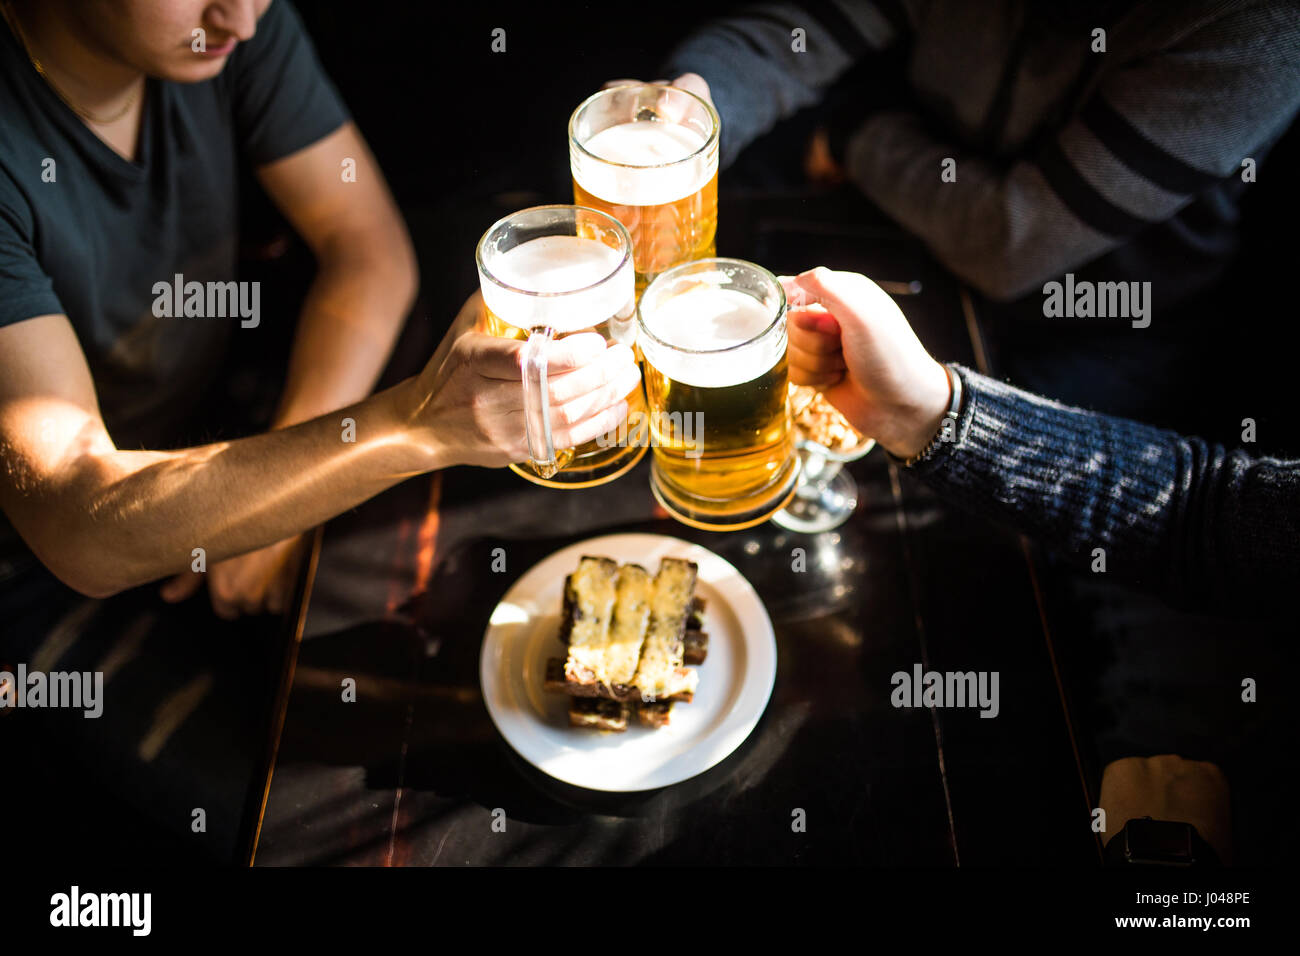 Close-up top view of people holding mugs with beer - Stock Image